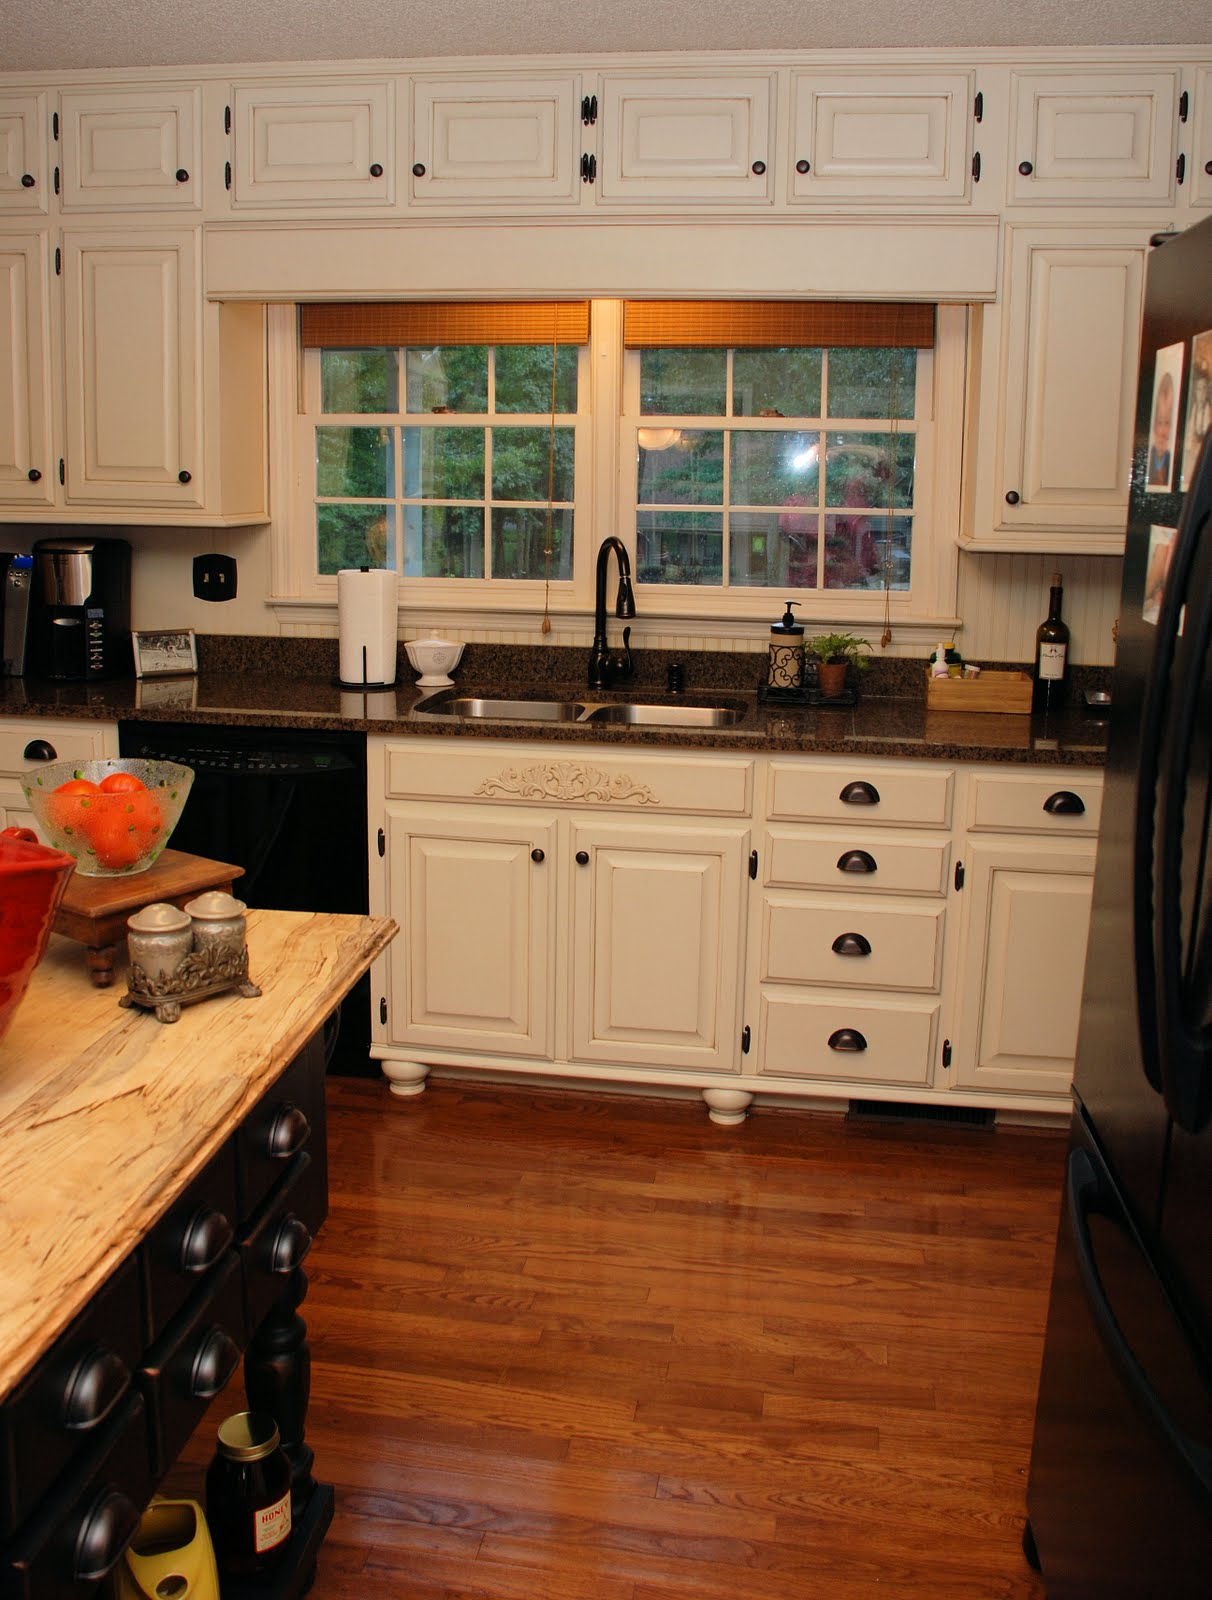 Antique White Kitchen Cabinets with Dark Countertops